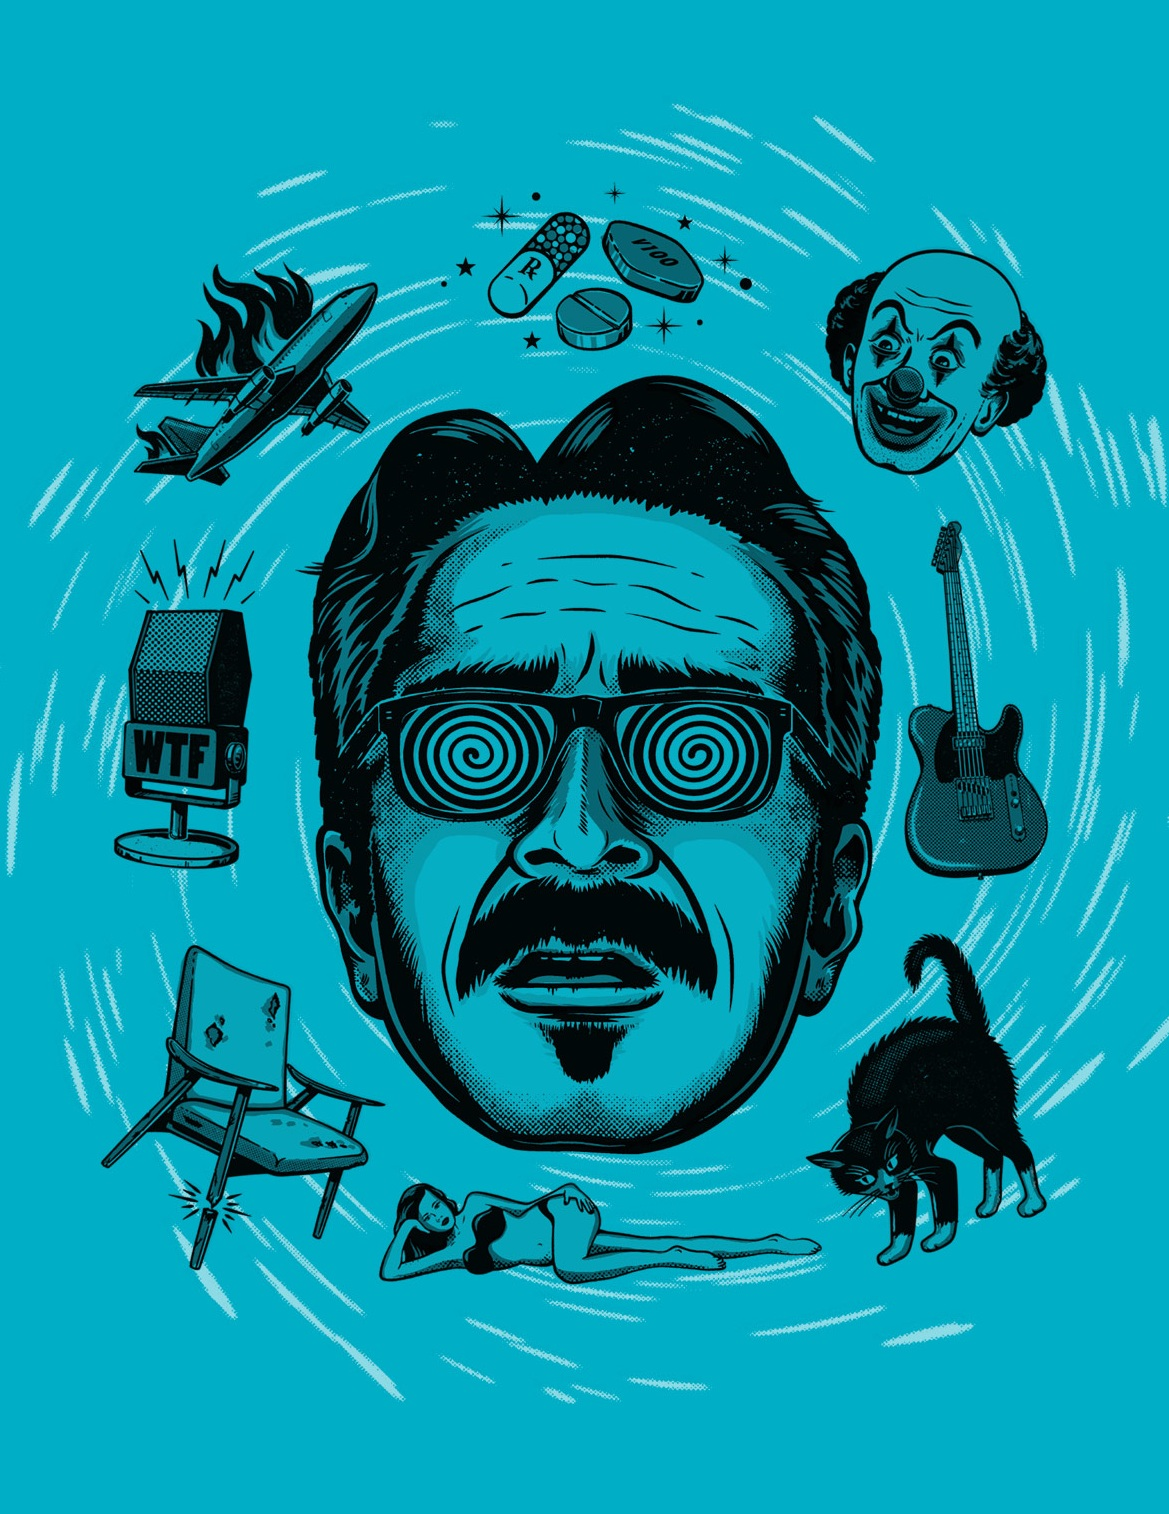 WTF Podcast with Marc Maron  View case study